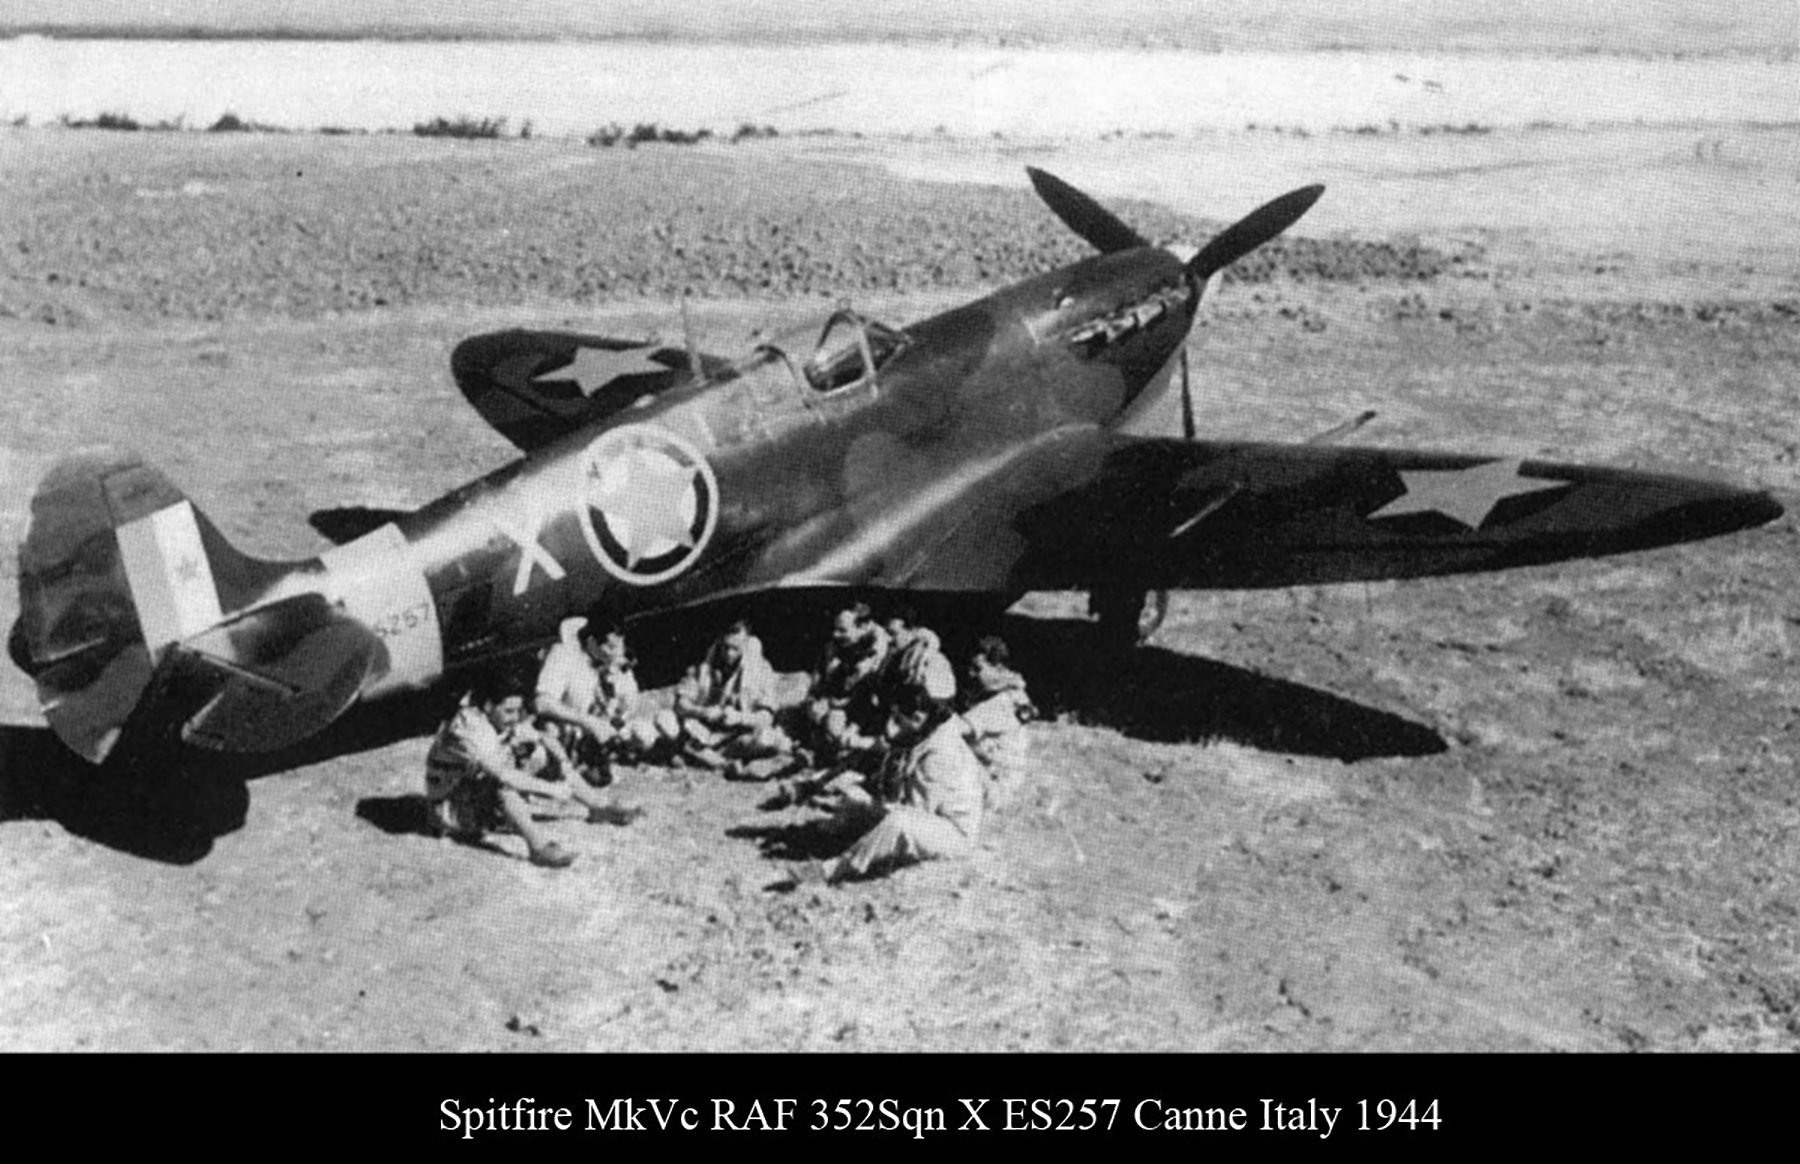 Spitfire MkVcTrop RAF 352Sqn X ES257 Canne Italy 1944 01